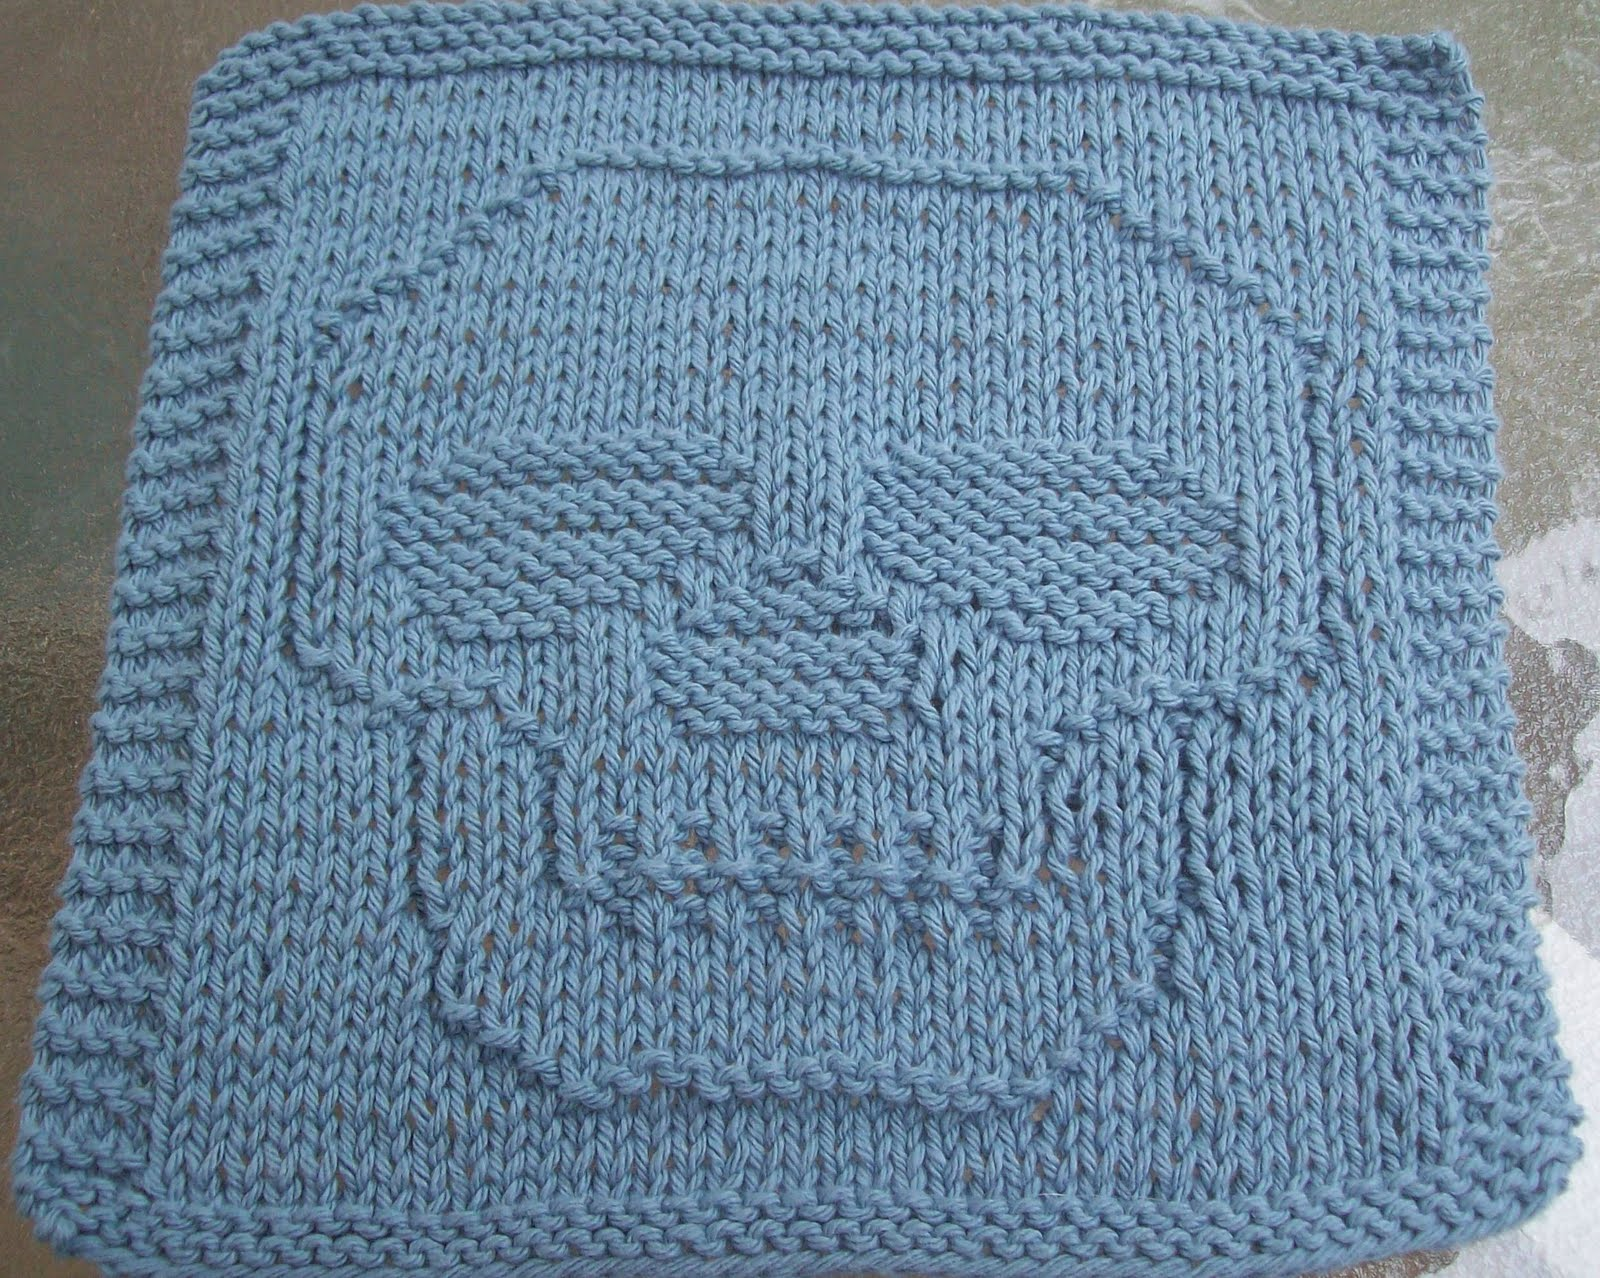 Knit Dishcloths Free Patterns : DigKnitty Designs: Just a Skull Knit Dishcloth Pattern